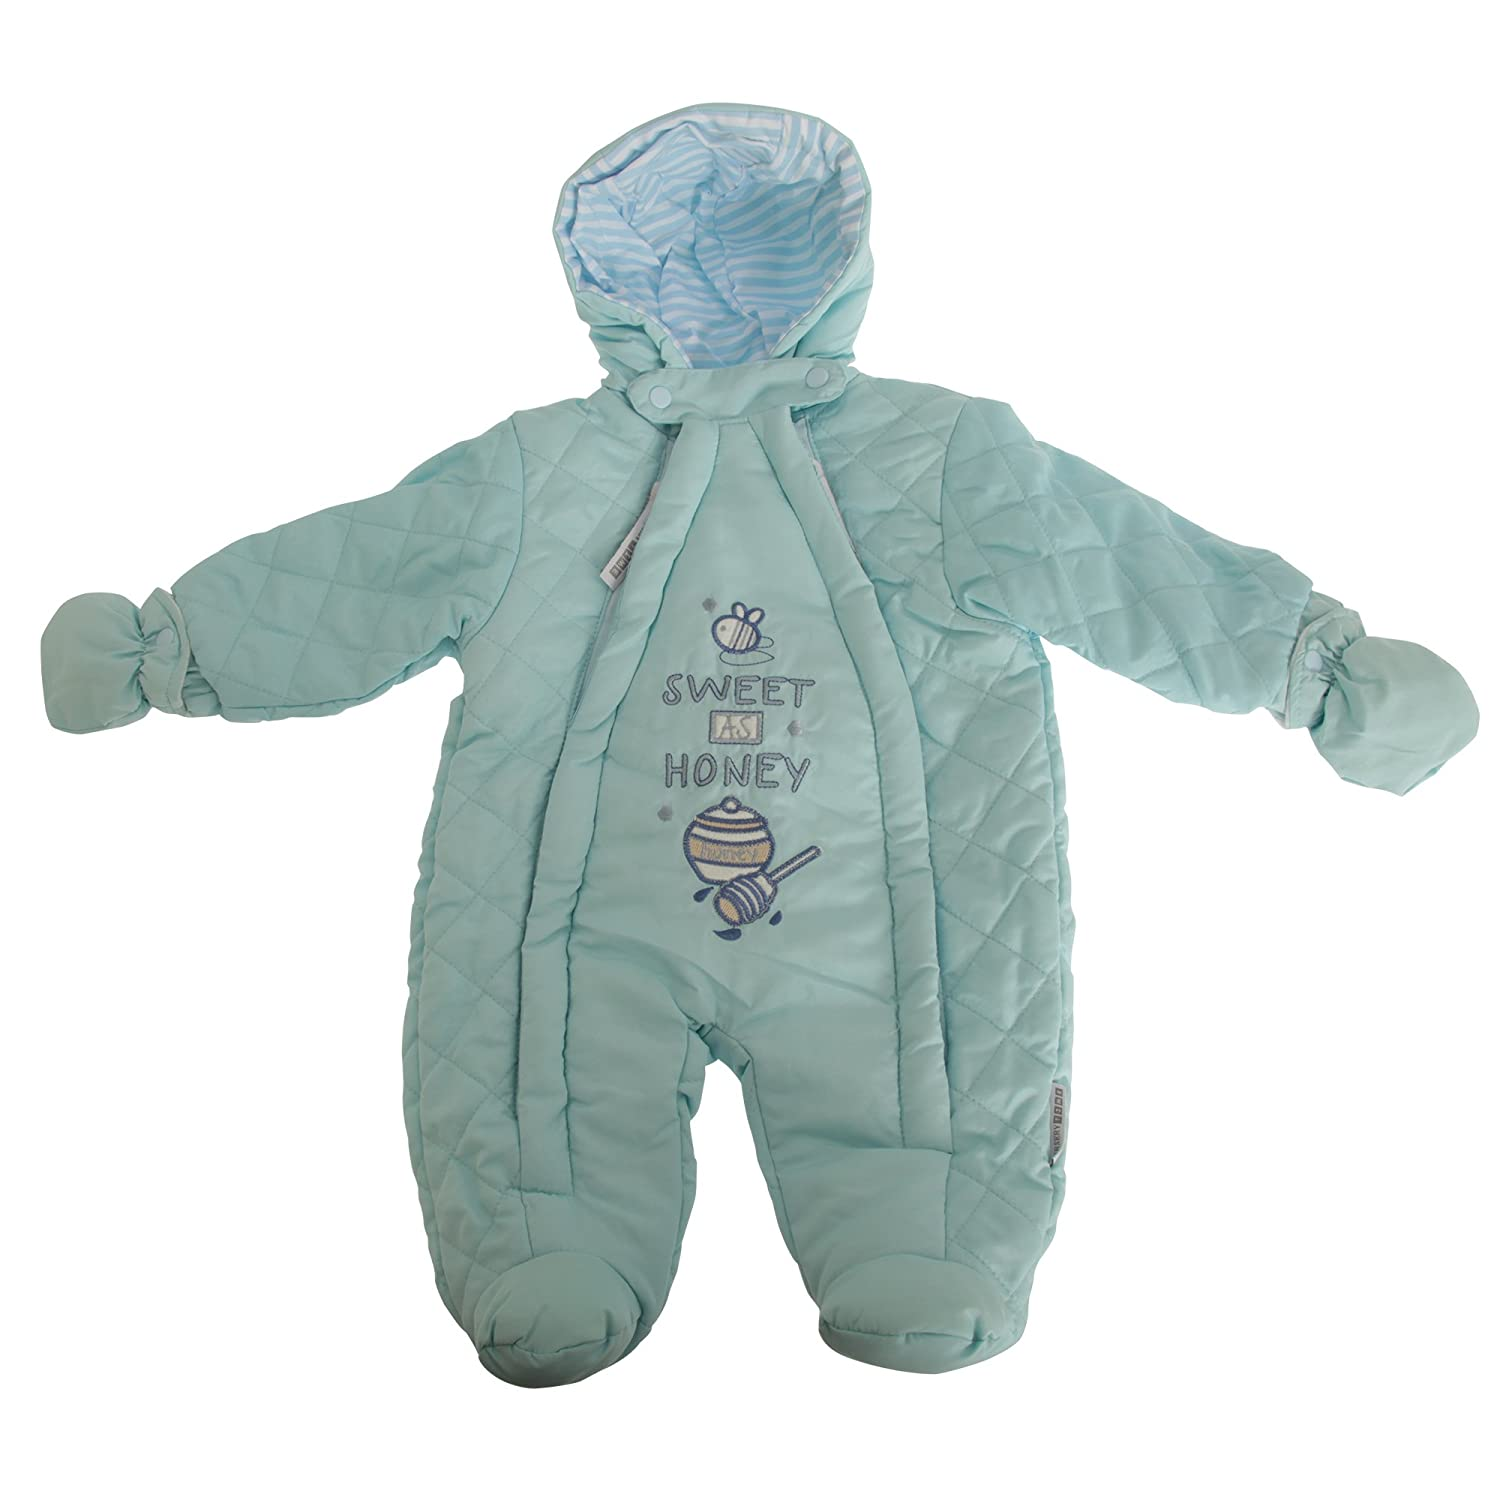 Nursery Time Baby Boys/Girls Sweet As Honey All in One Hooded Winter Snowsuit (Newborn) (Sky Blue) UTBABY1426_3